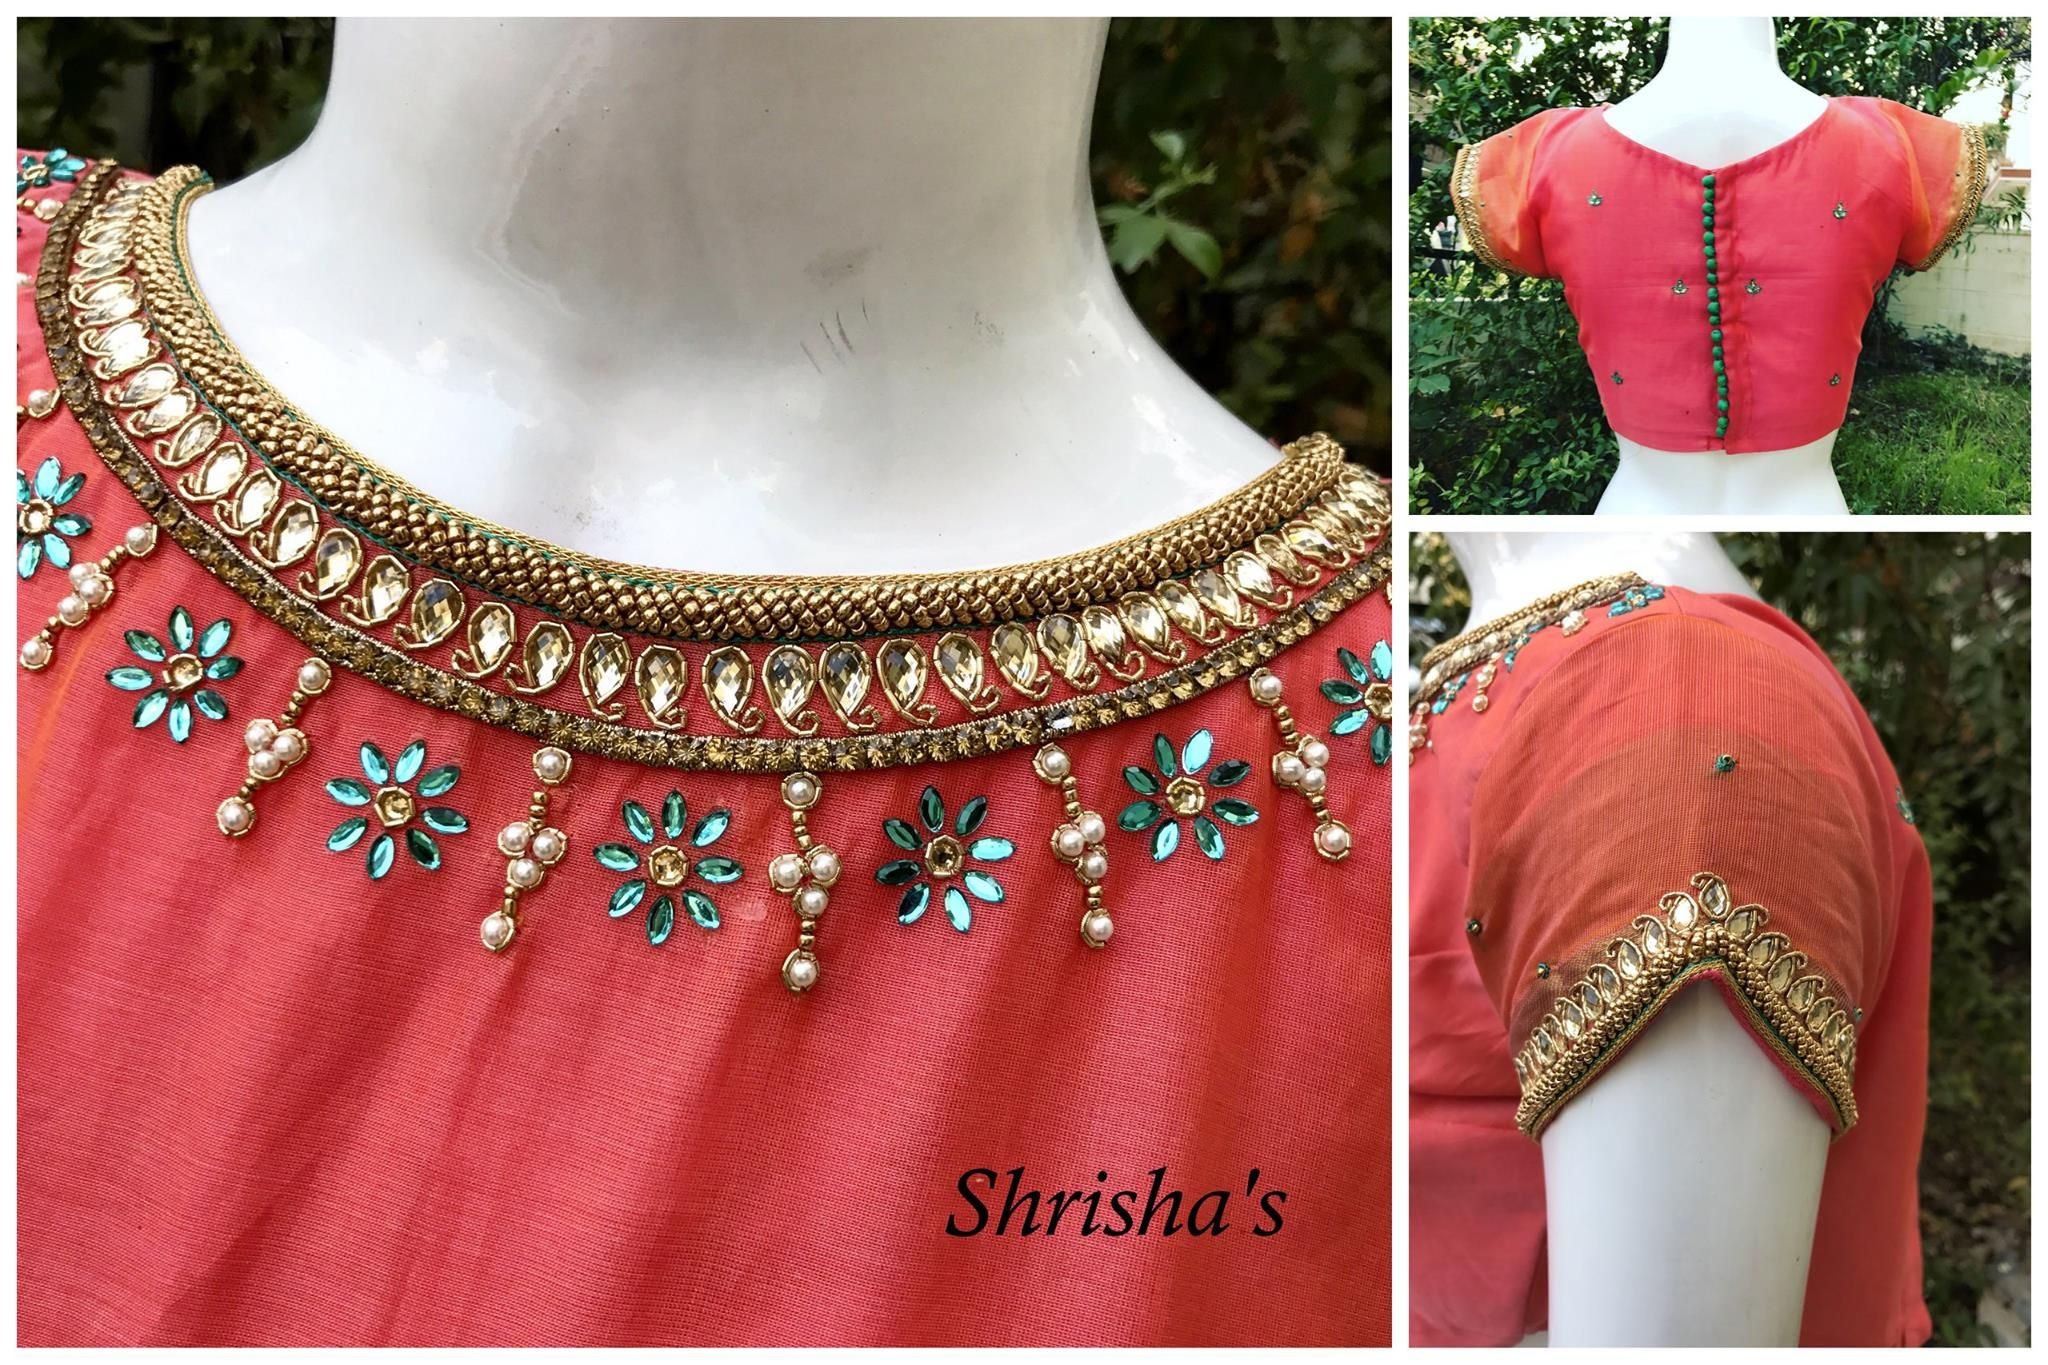 Shrishas Fashion Designer. Contact : 098946 14882.